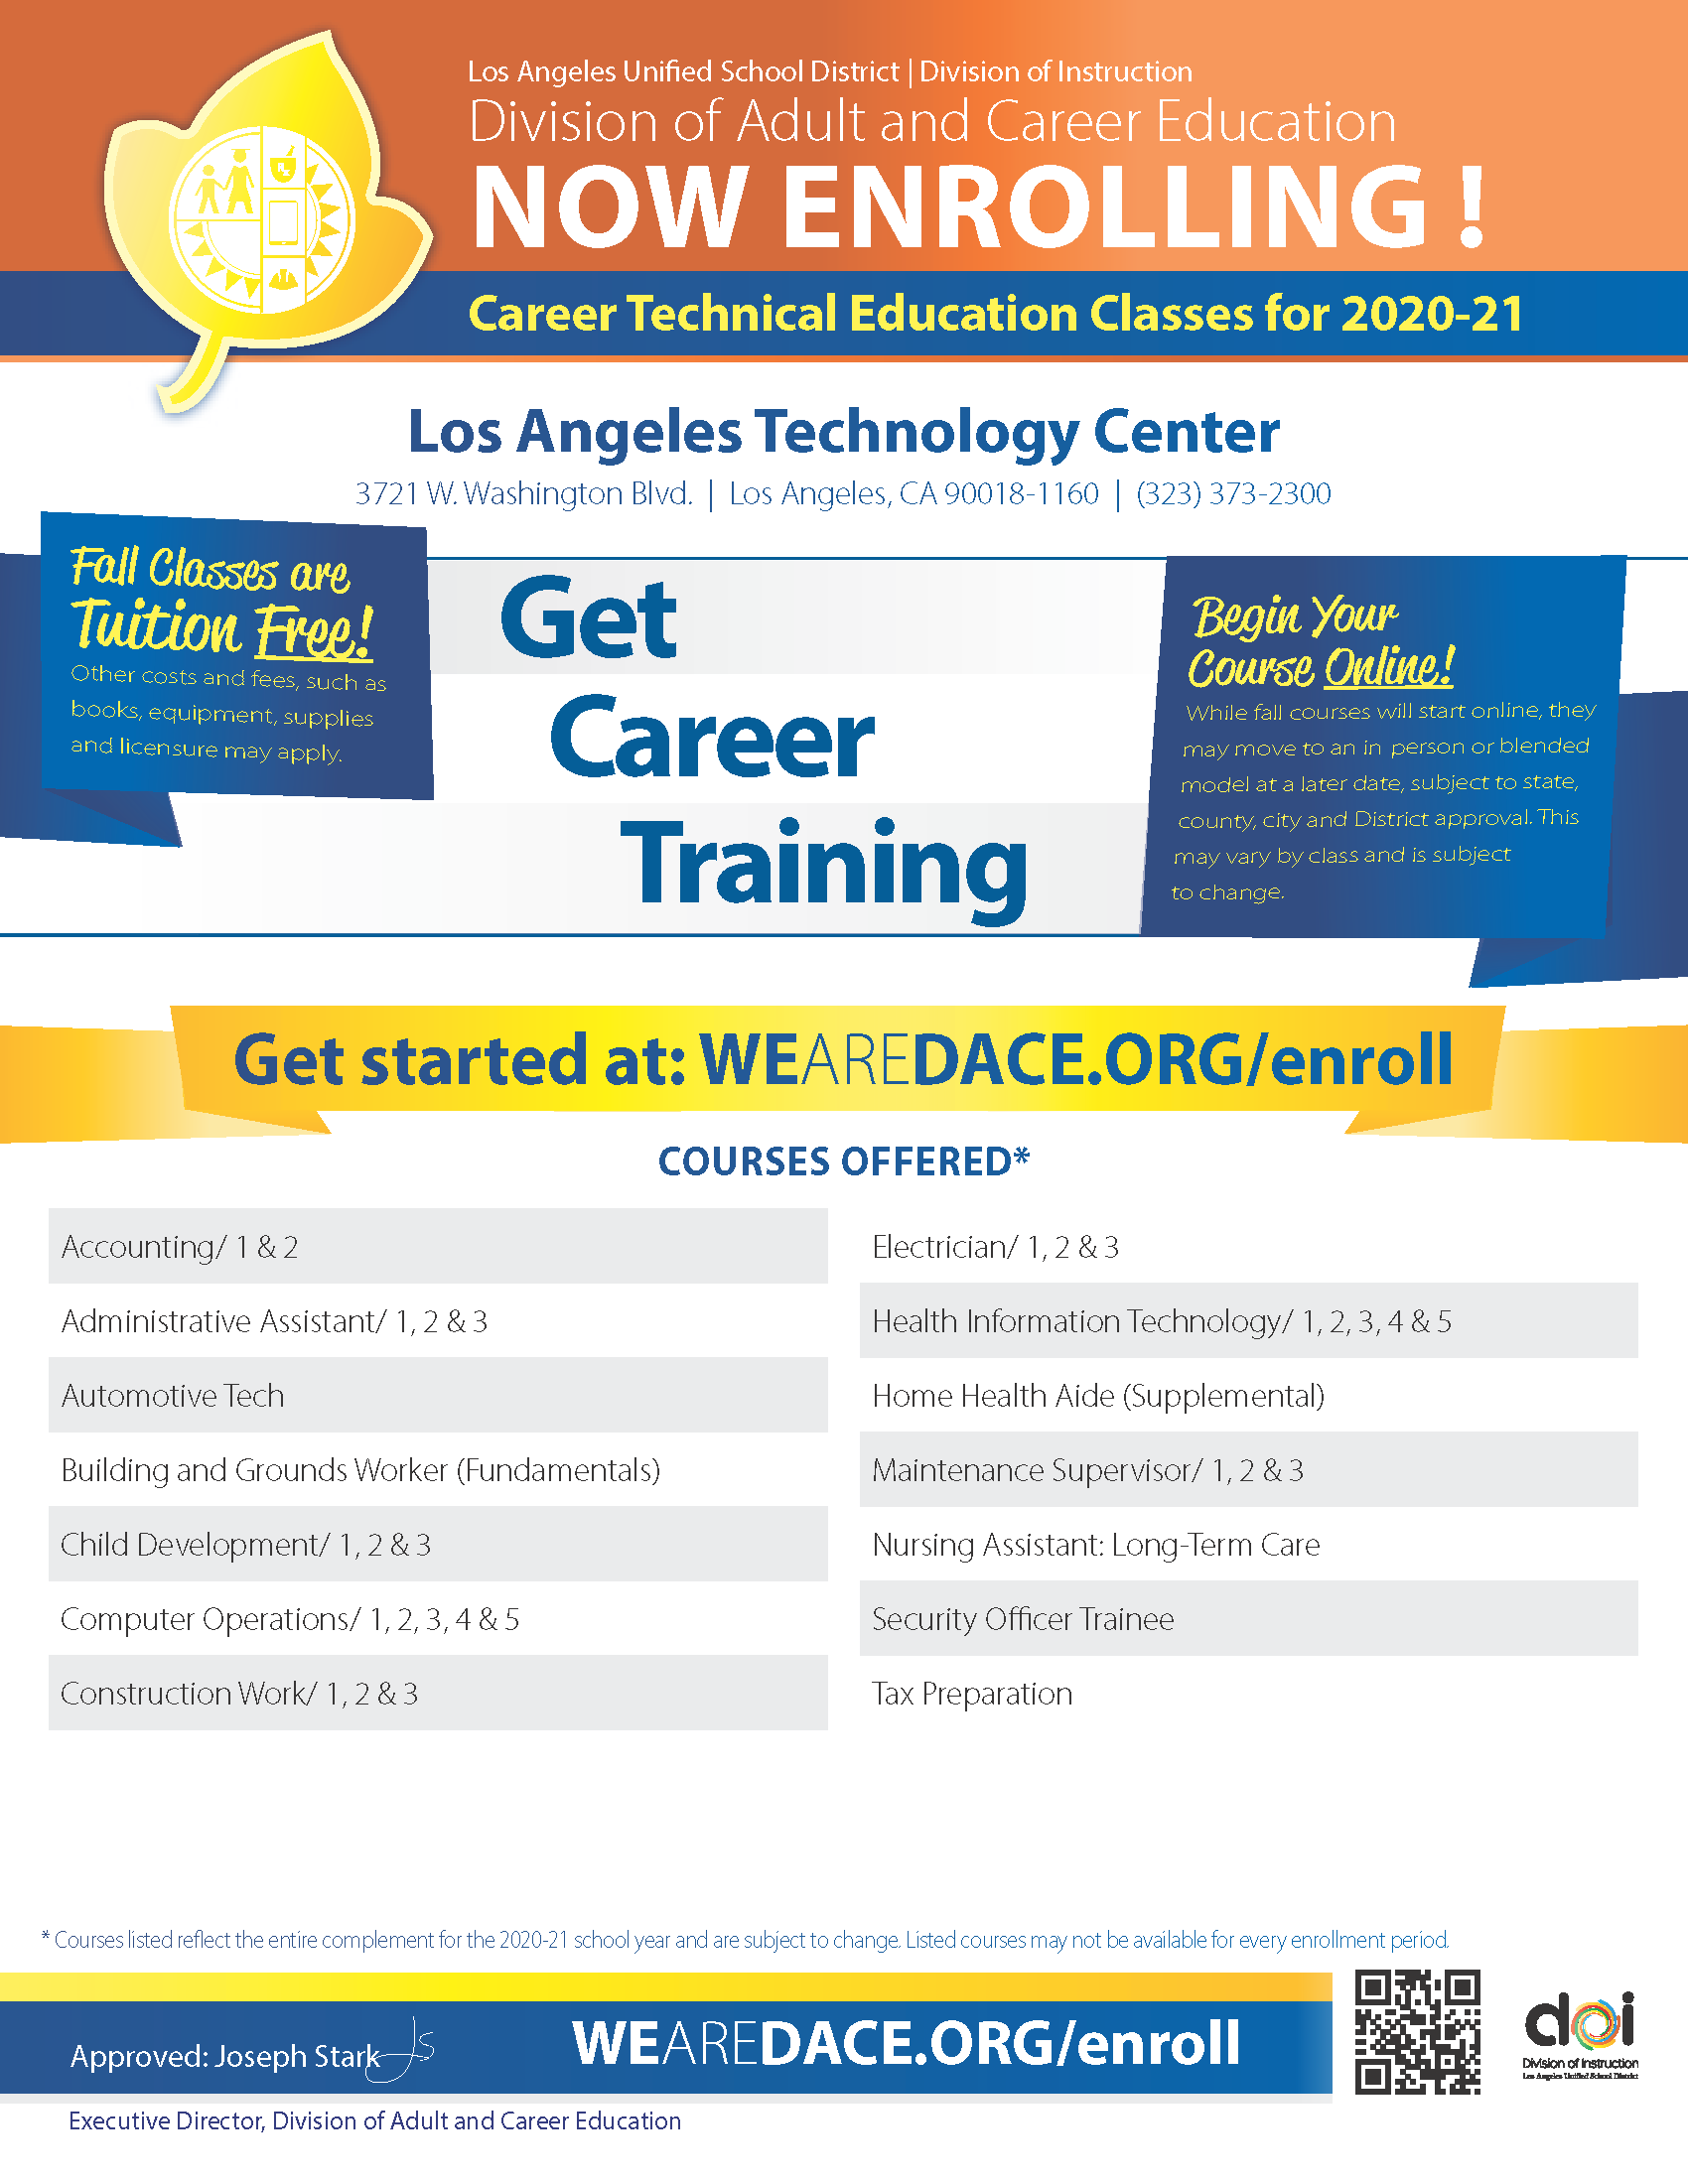 Career Technical Education Flyer for 2020-21